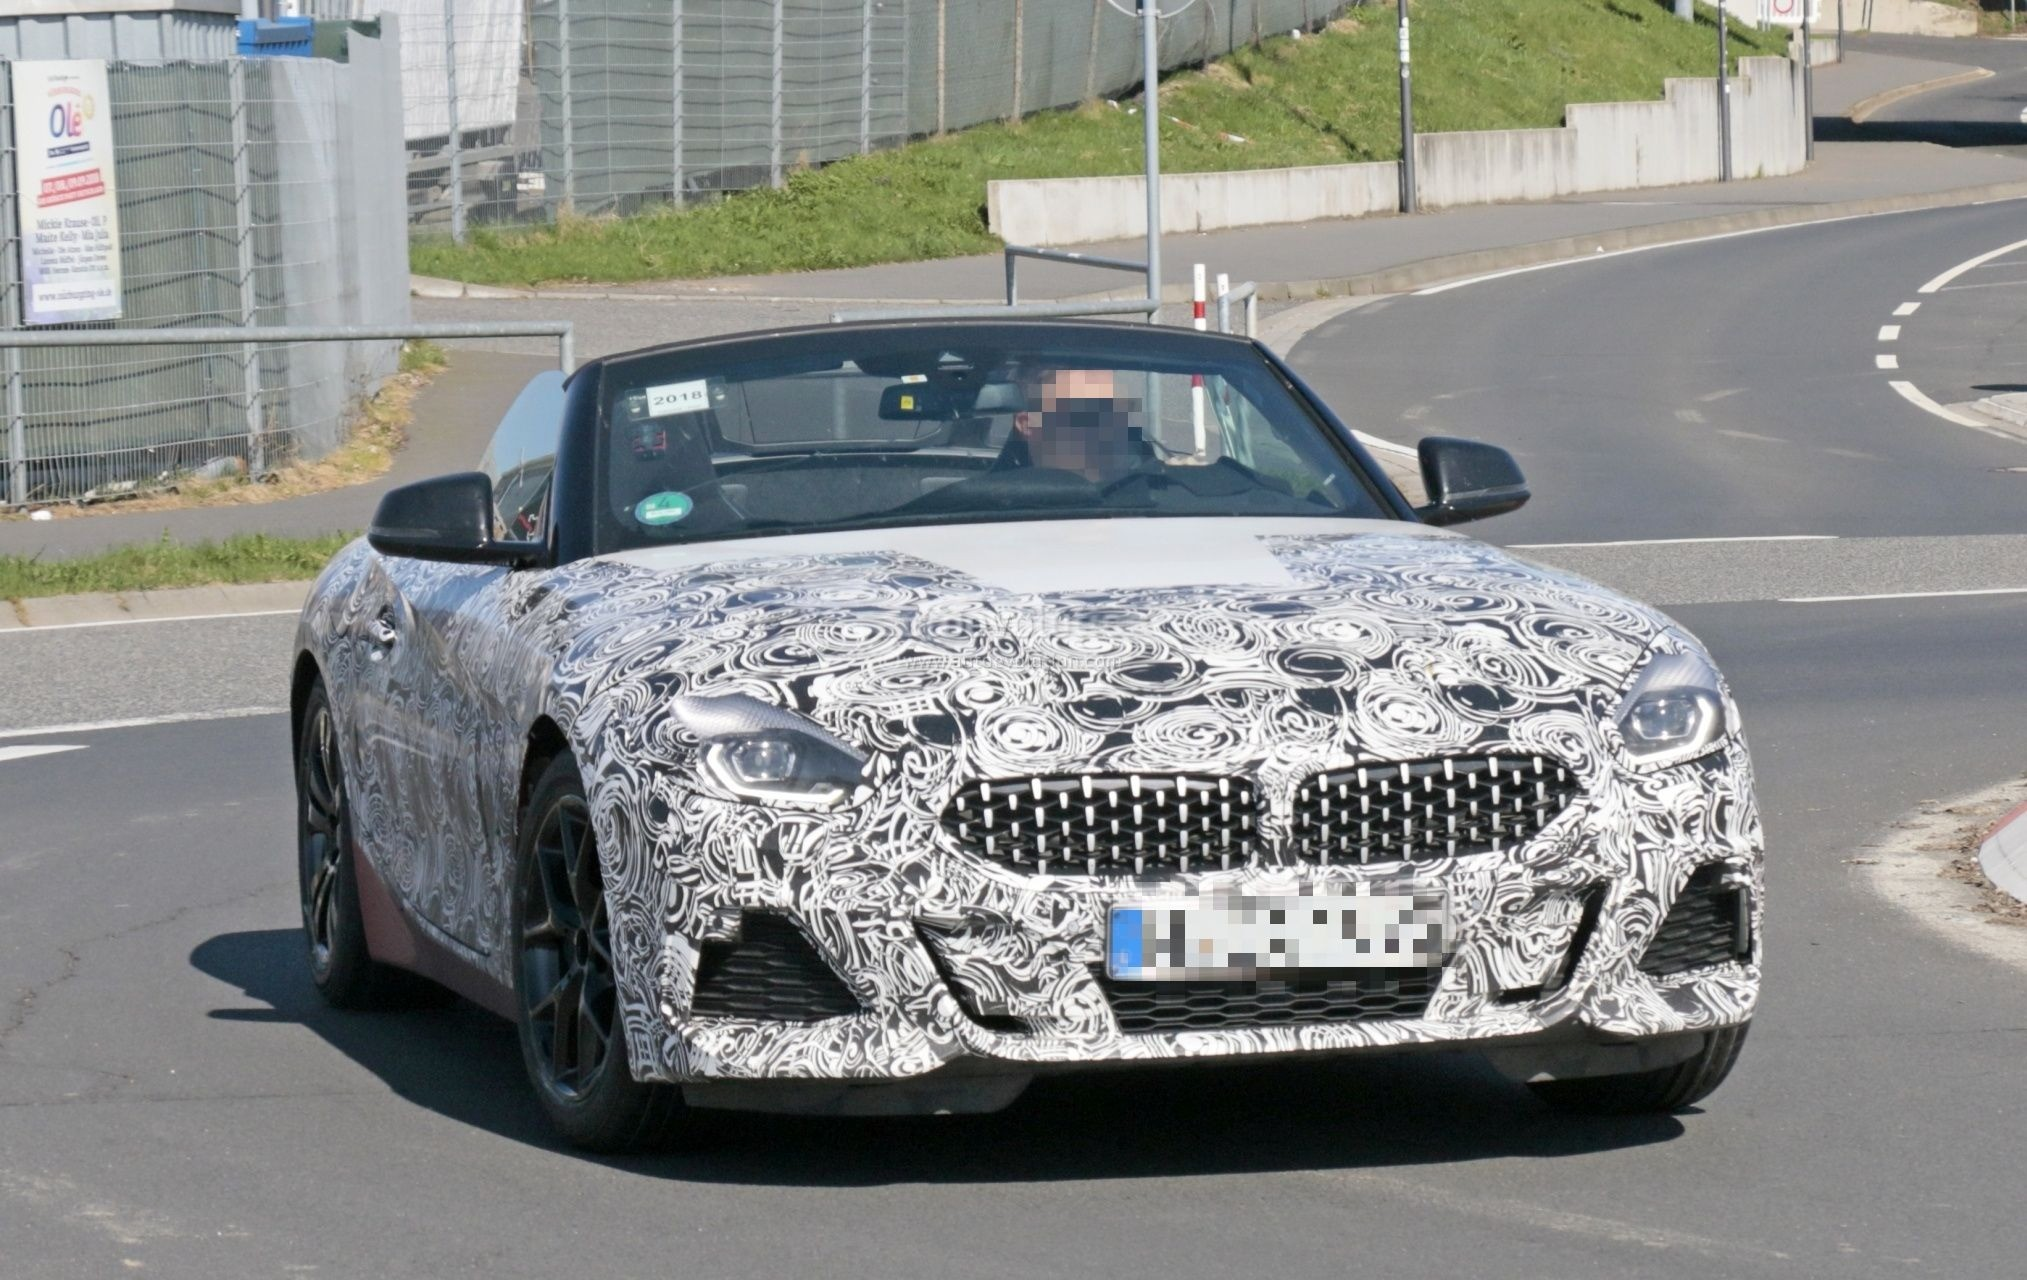 2019 Bmw Z4 Spied With Top Down Reveals Interior With Operating